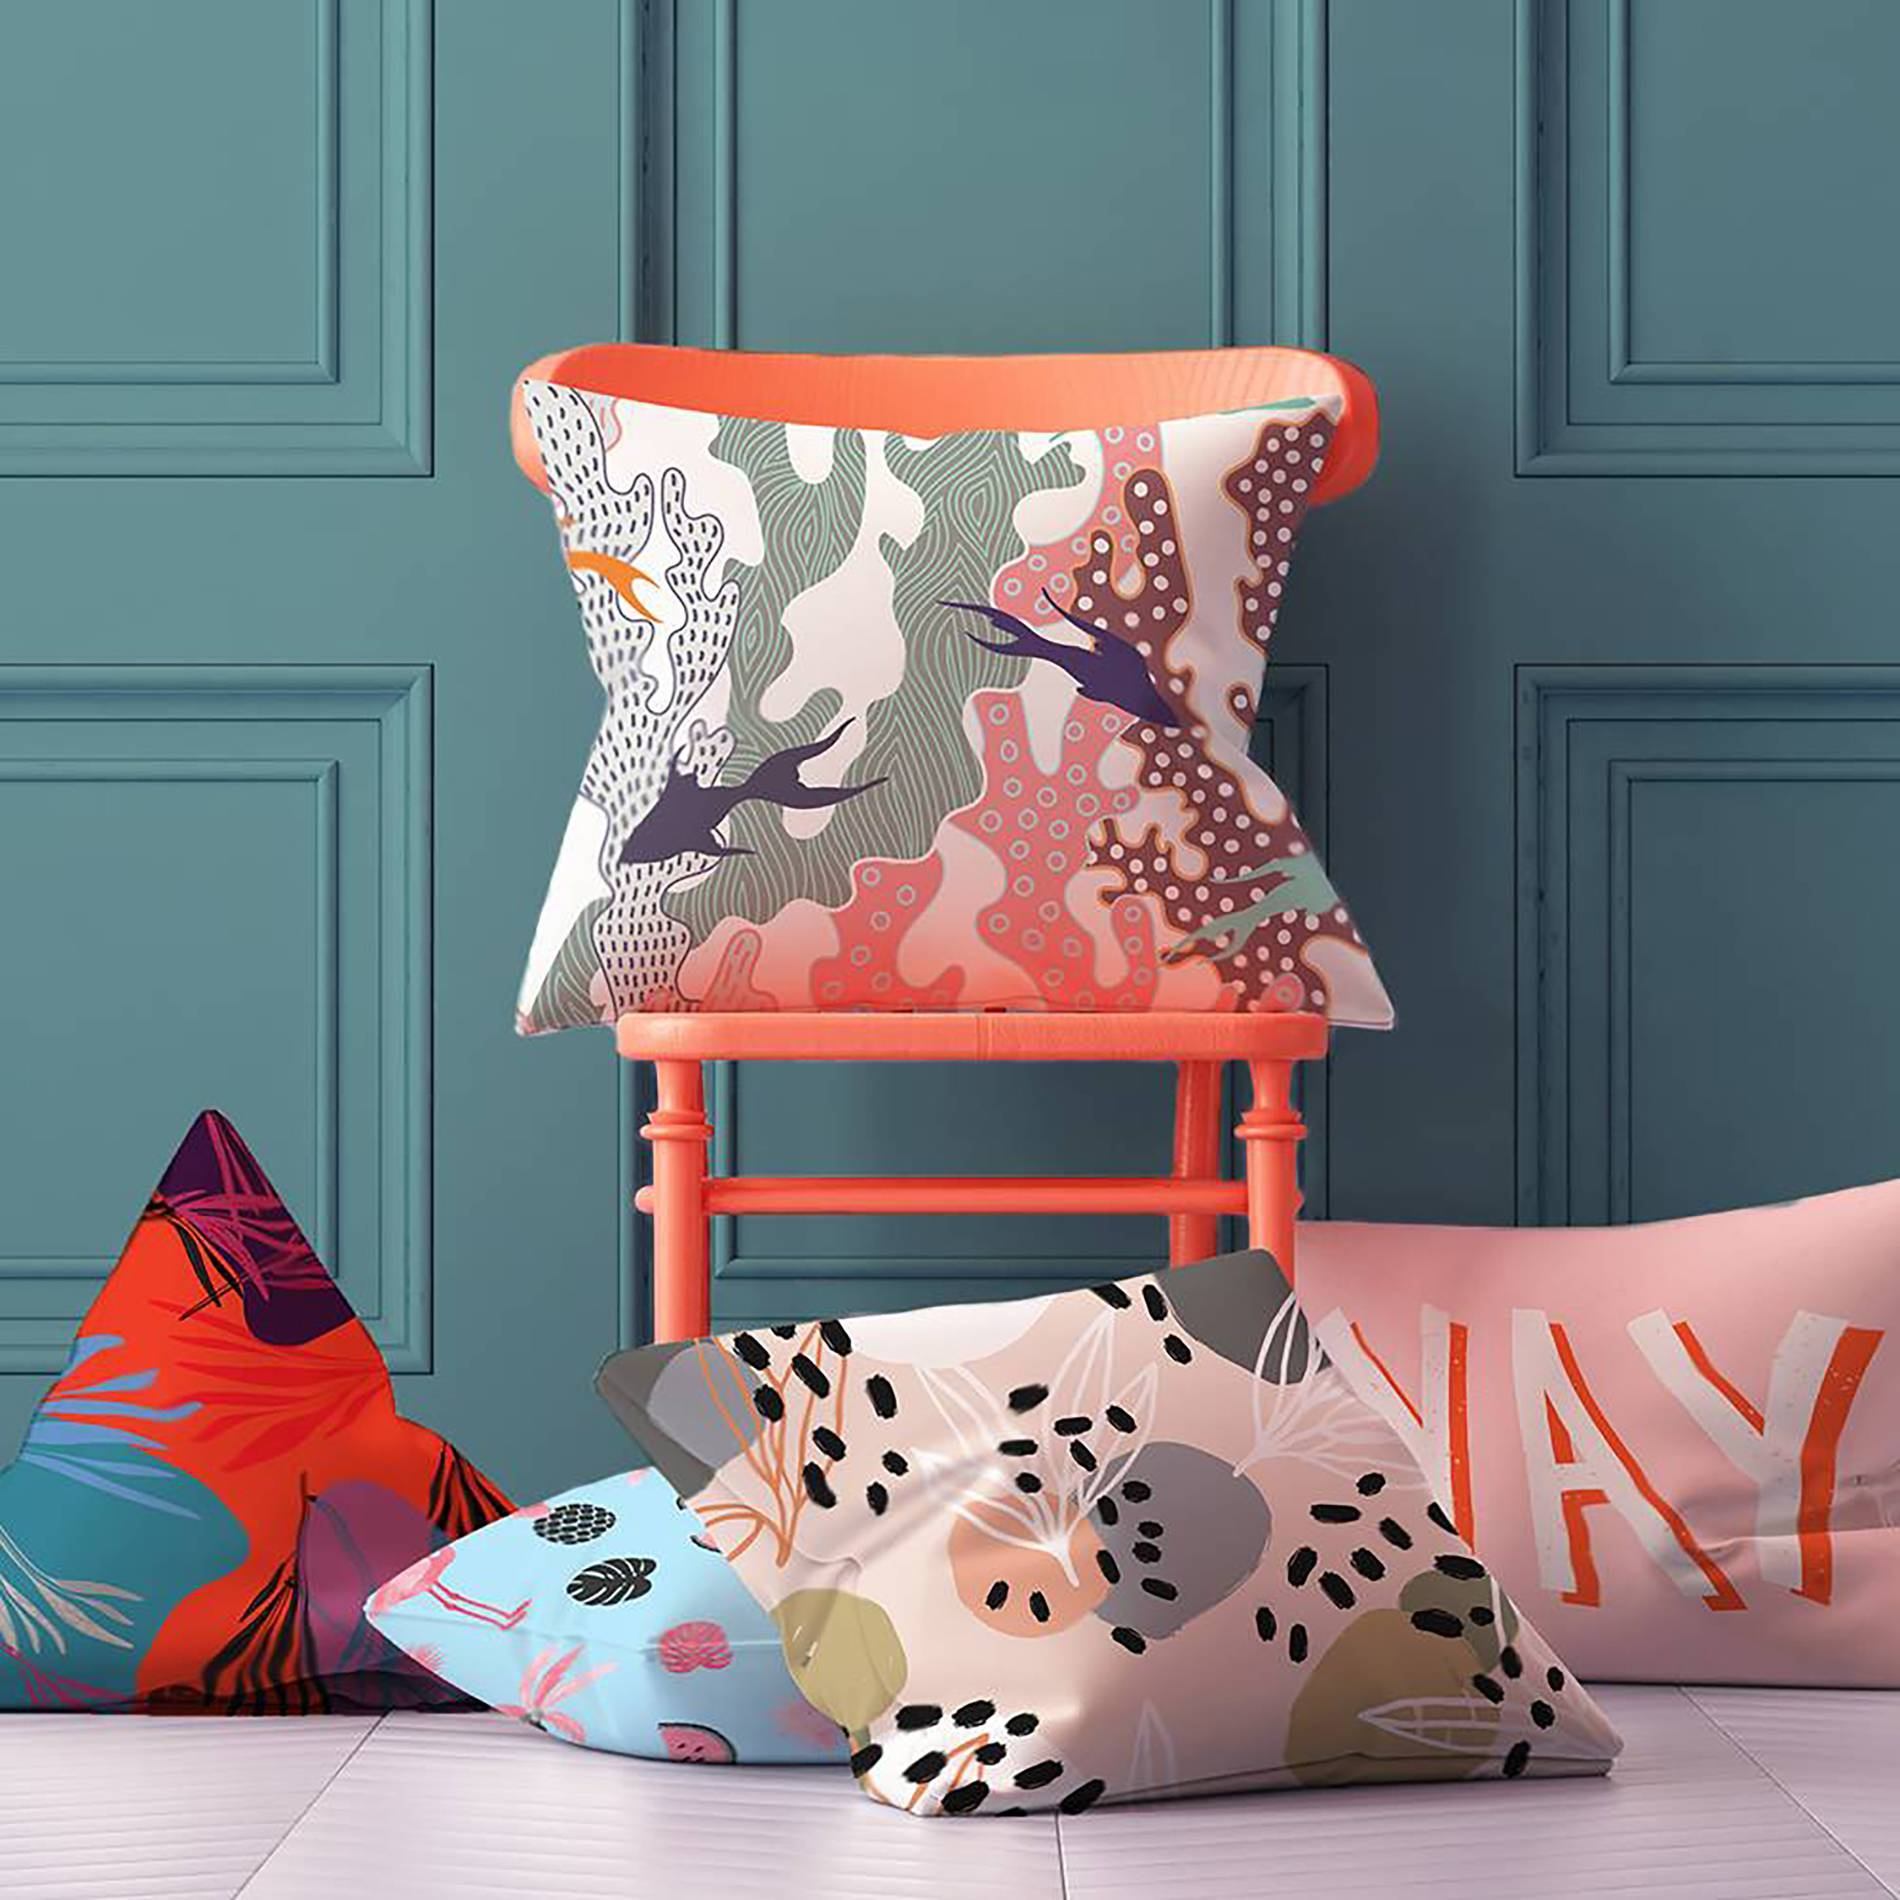 Pink Mix Teenager S Room Eclectic Nature Pillows Textures And Patterns Pixers We Live To Change